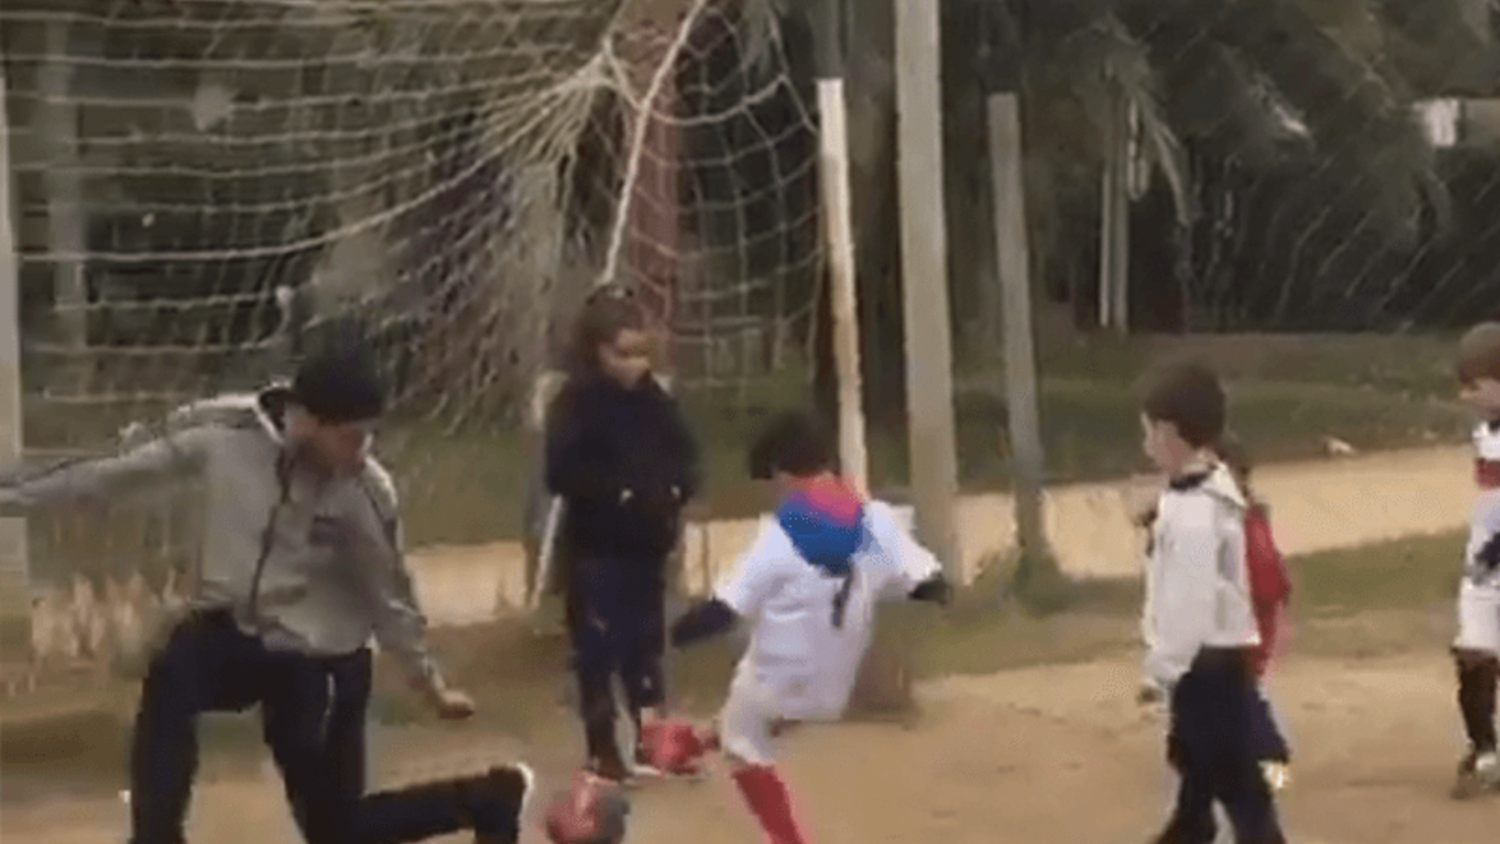 Luis Suarez plays in goal during a kid's street game in Uruguay